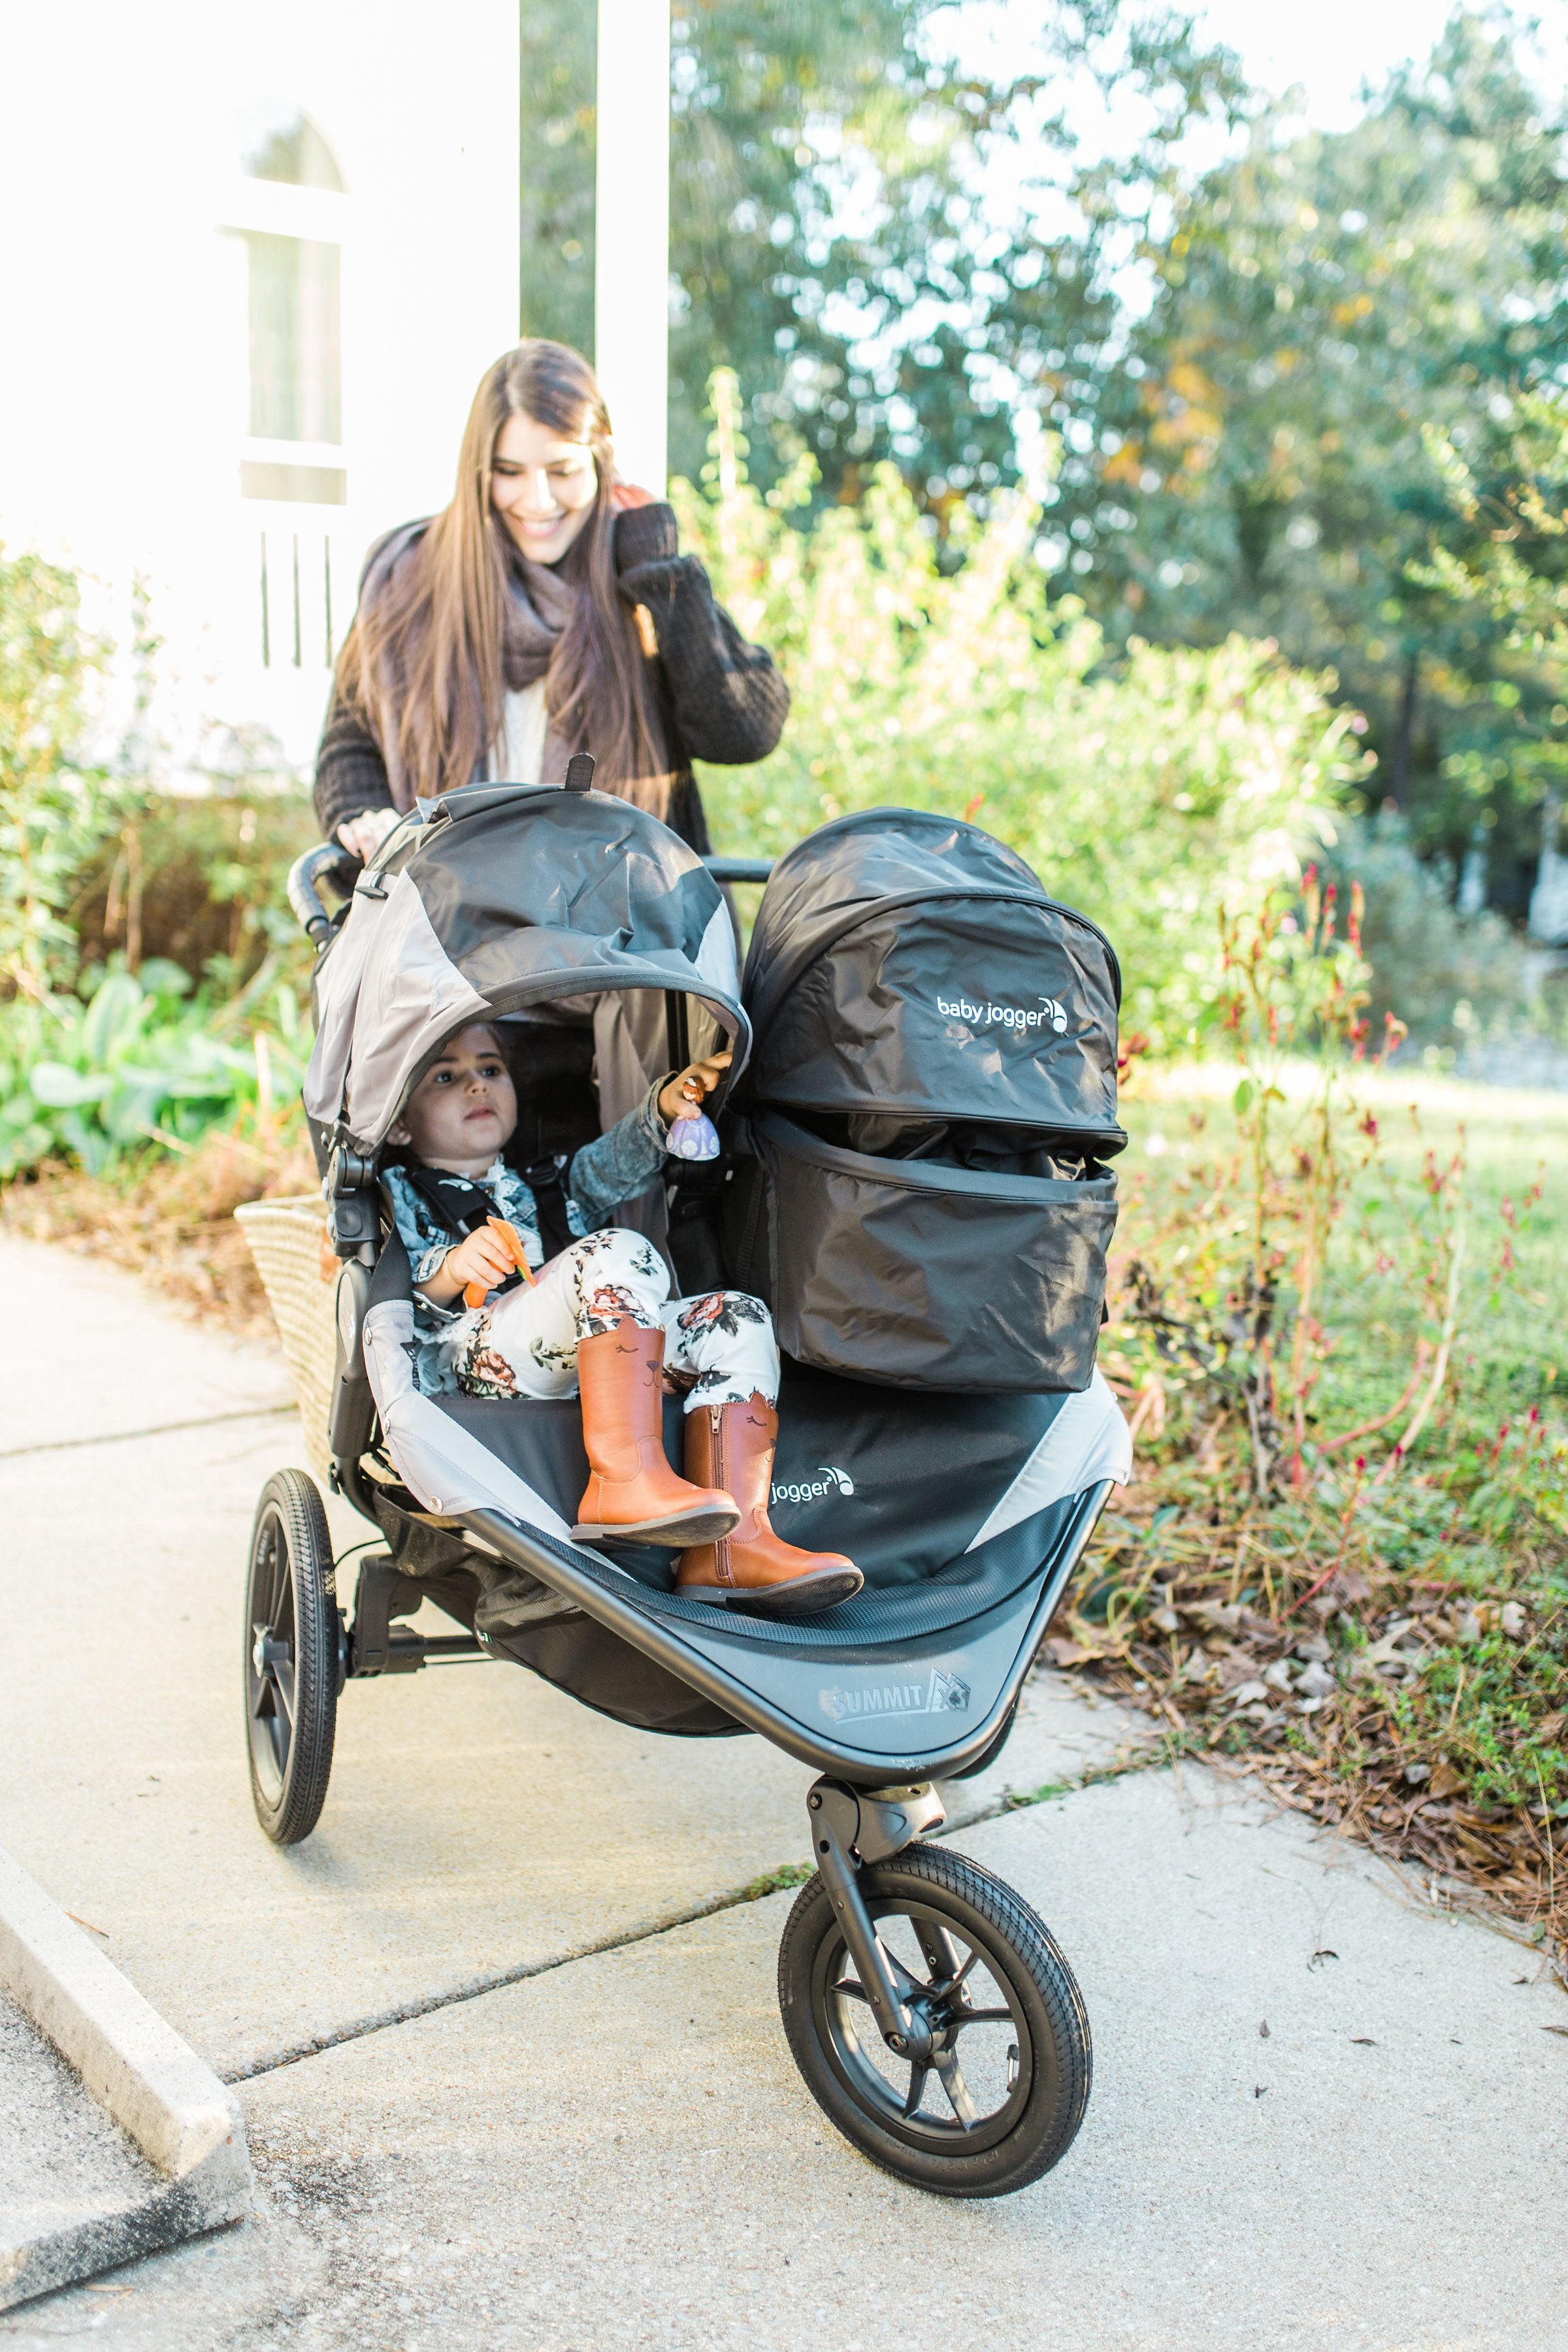 Baby Jogger Summit X3 Double Stroller Review Baby jogger